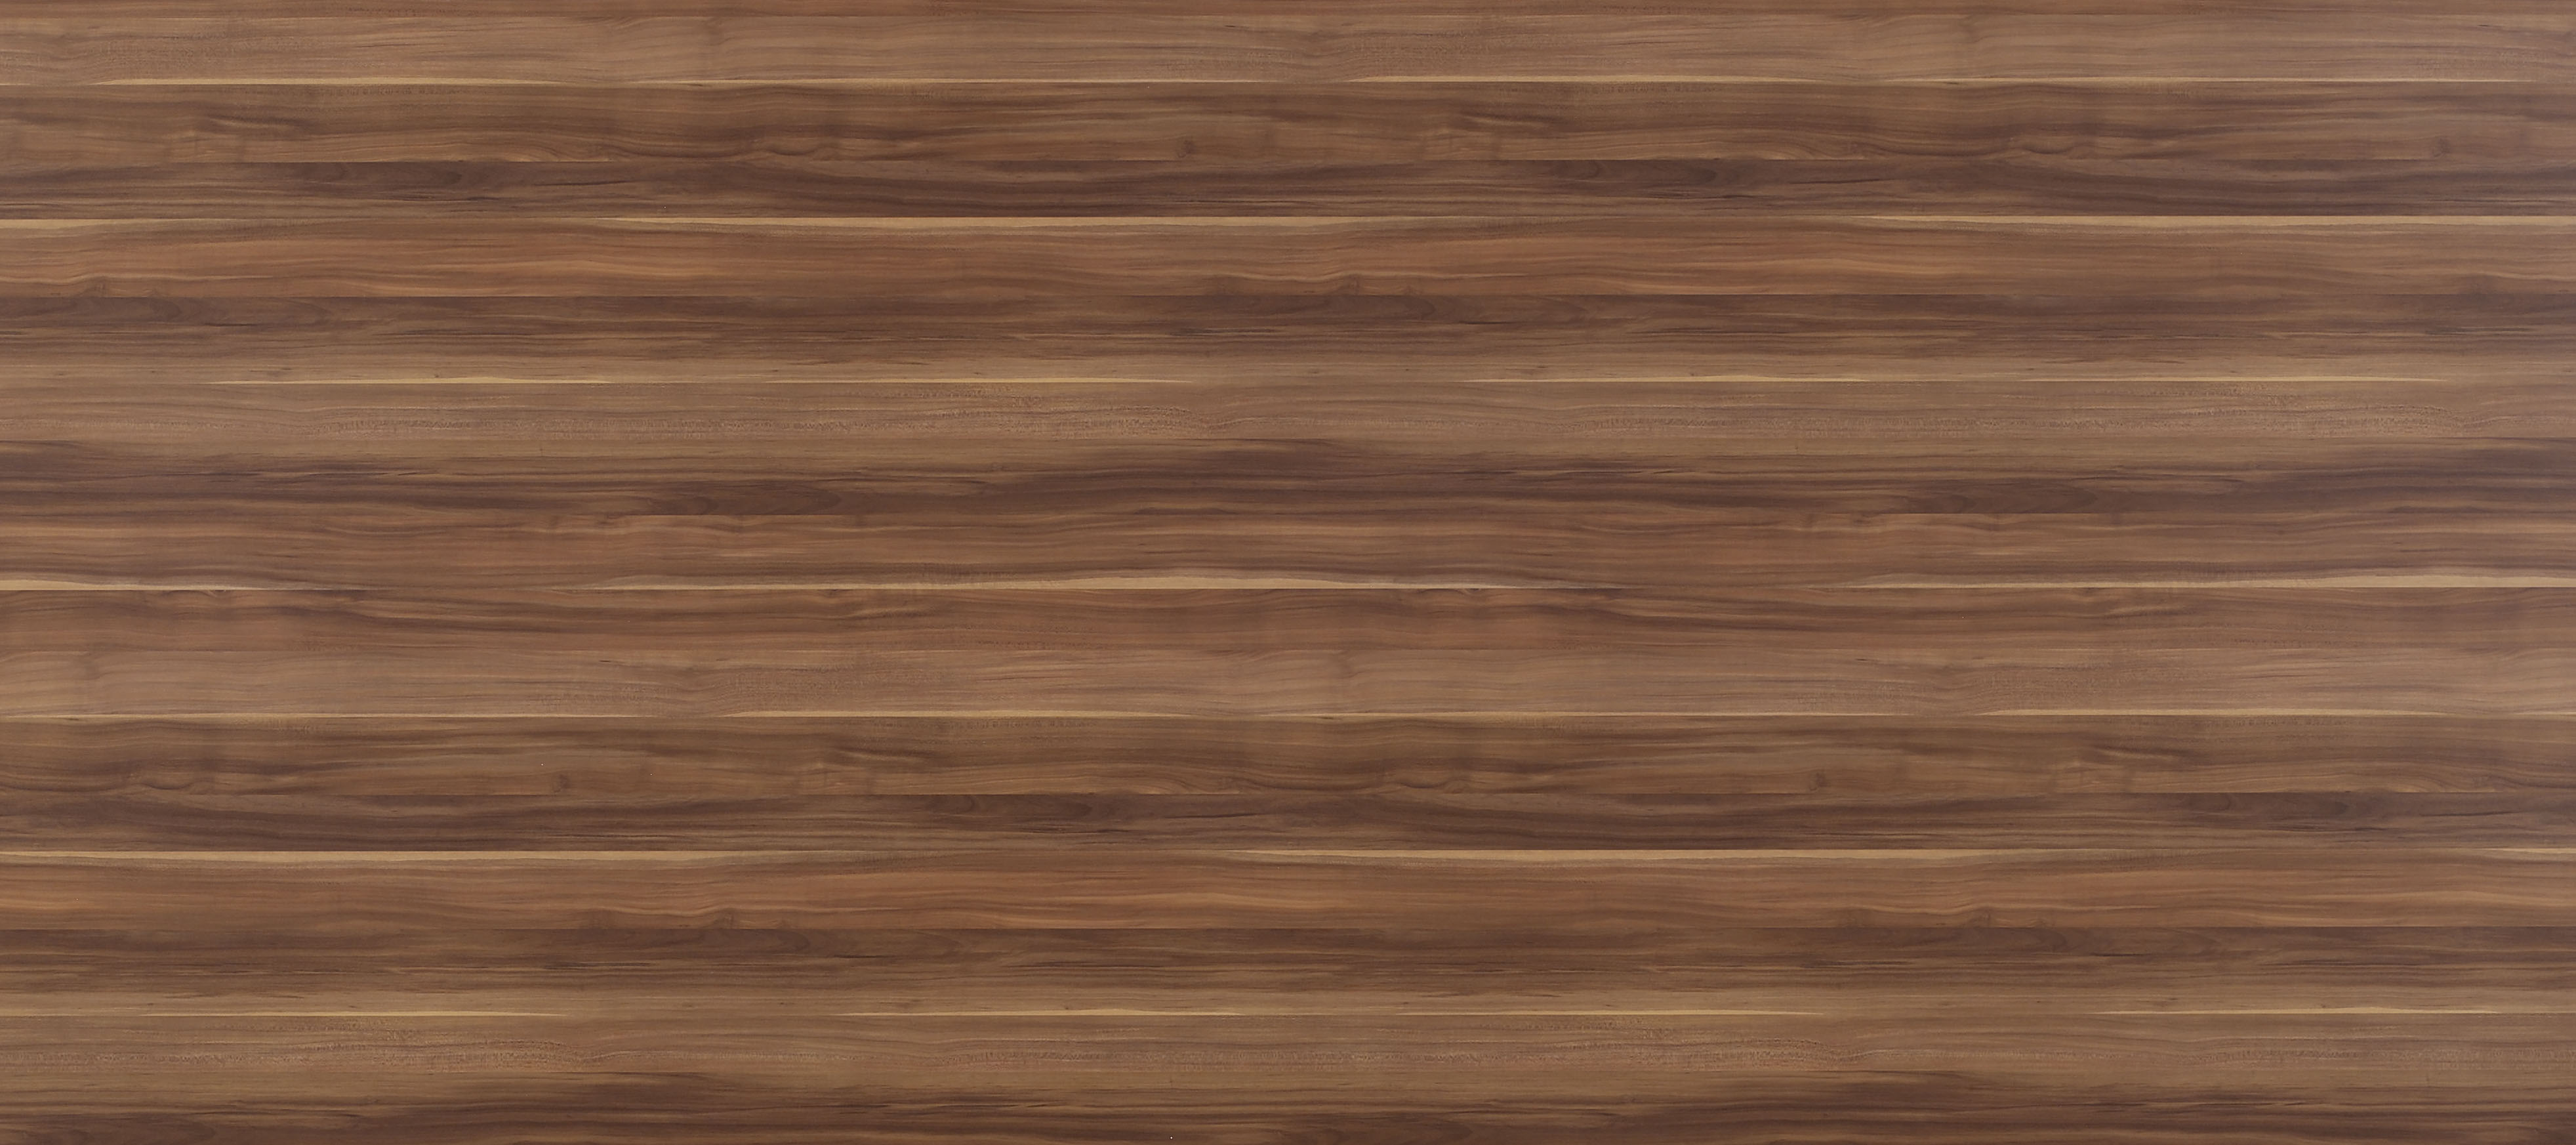 Texture wood free download photo download wood texture background